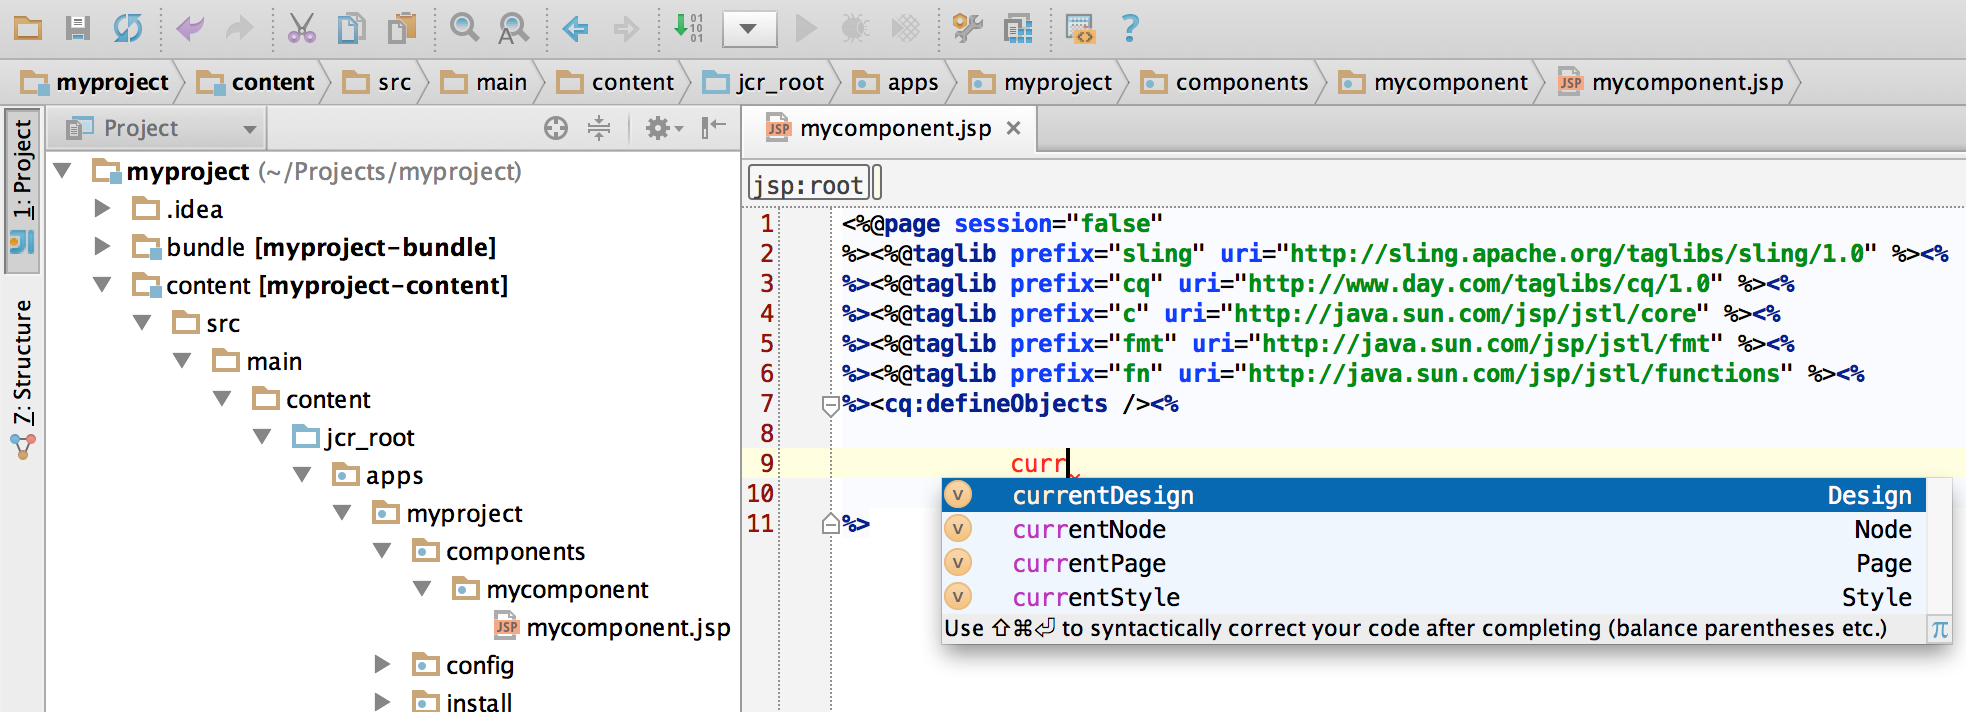 How to Develop AEM Projects using IntelliJ IDEA